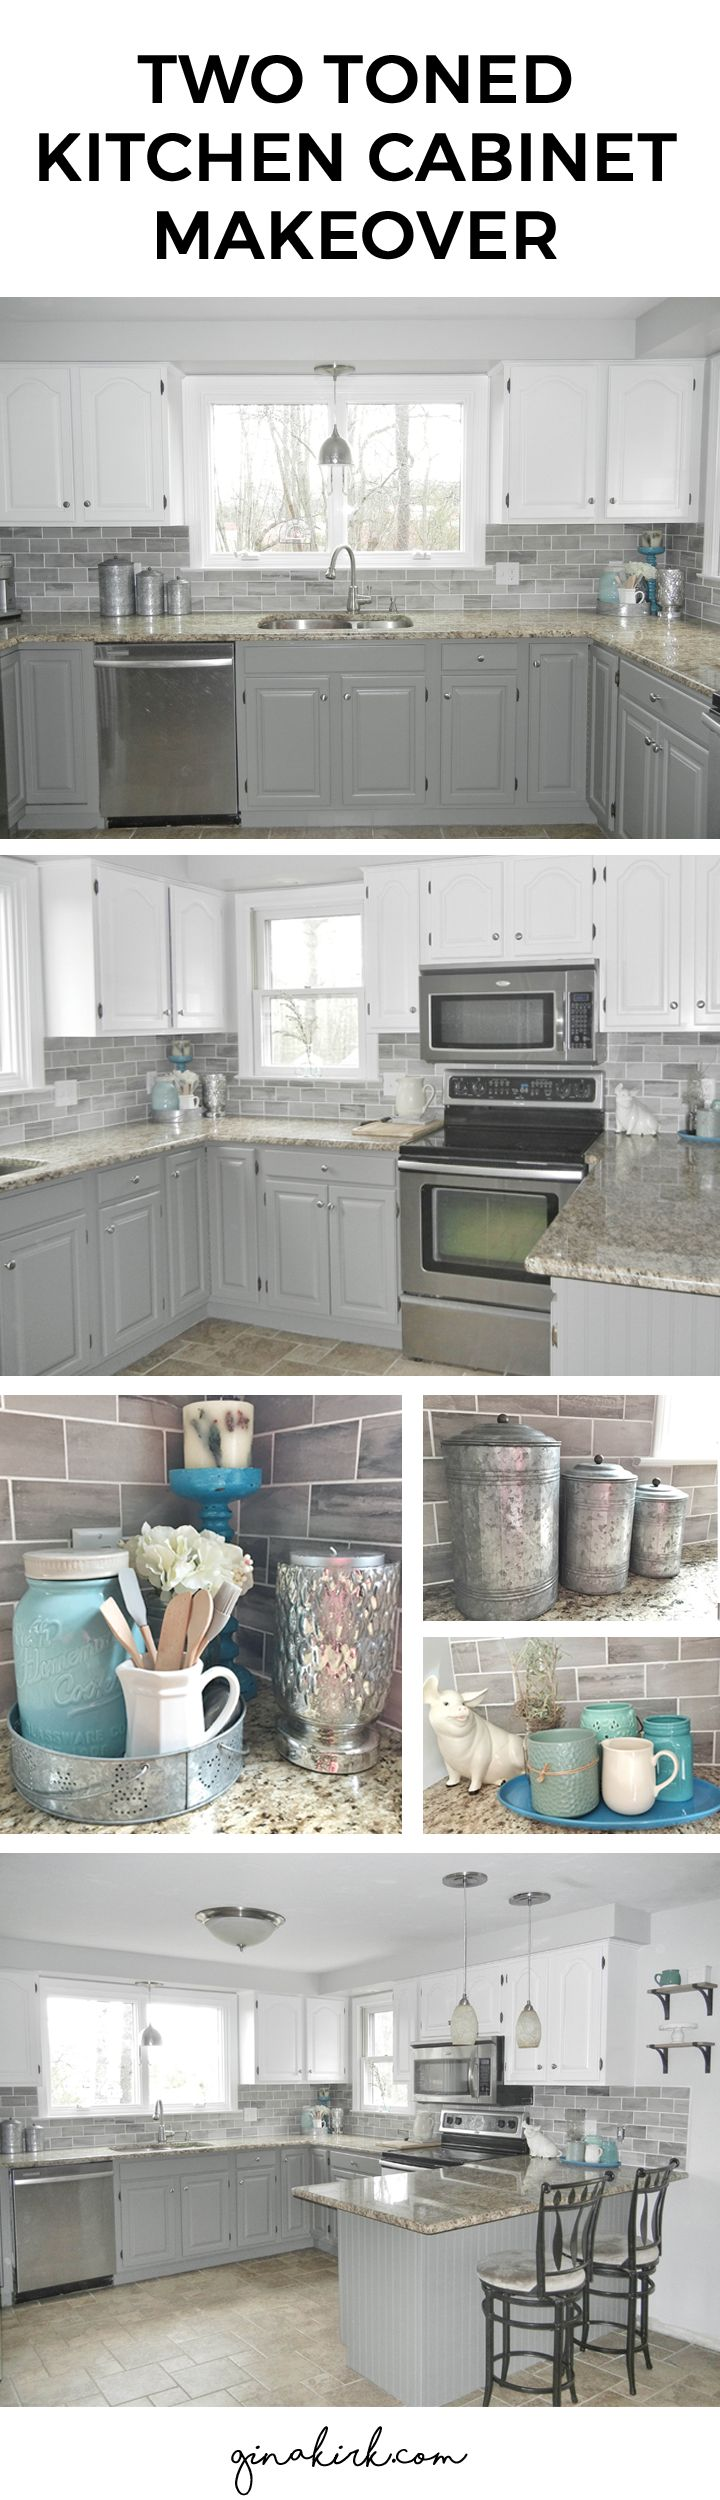 kitchen cabinet makeover oak cabinets to two toned gray and white cabinets chelsea gray